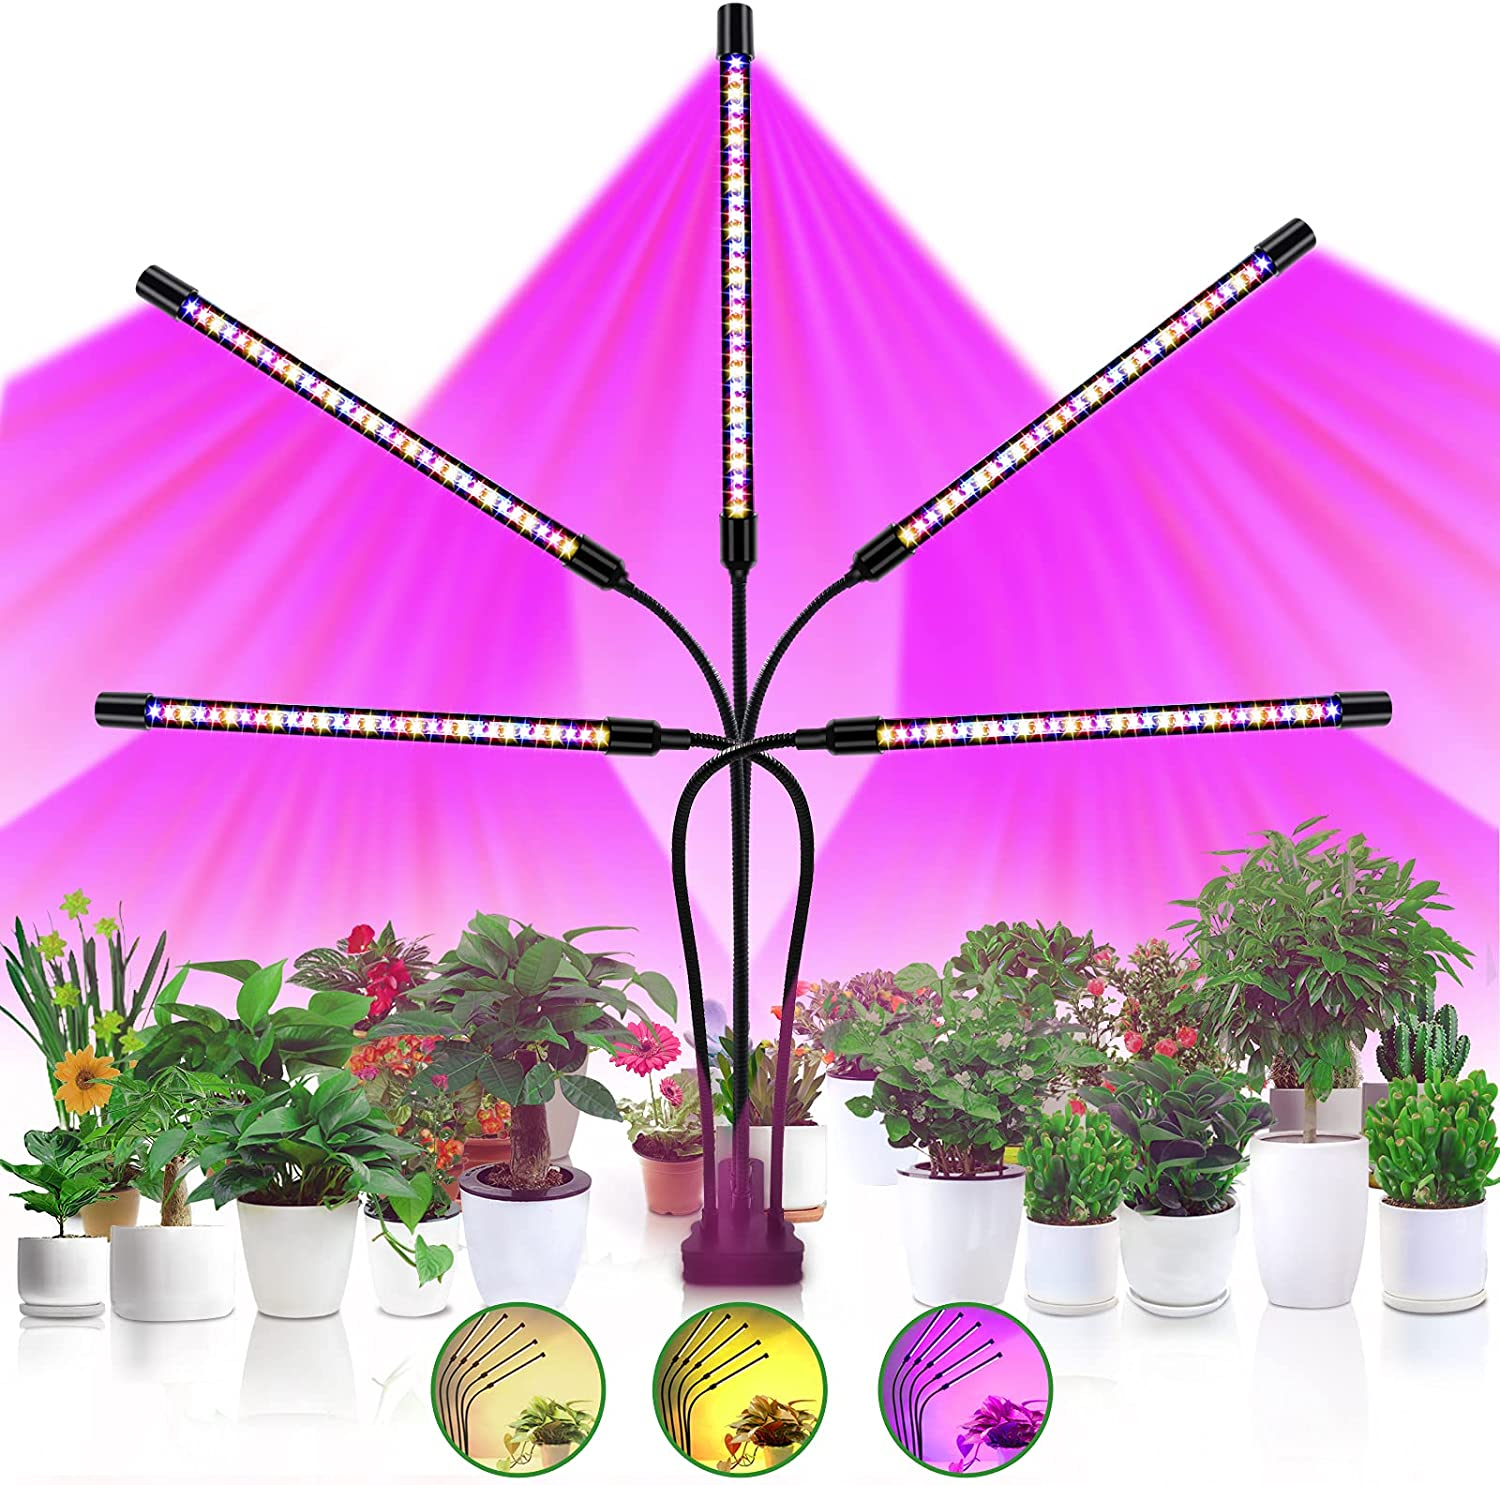 Grow Light Craftersmark Plant Lamps 150 LEDs 10 Dimmable Levels Full Red Blue Spectrum Auto ON & Off Timer Adjustable Gooseneck for Seedling/Rooting/Blooming, 5 Heads